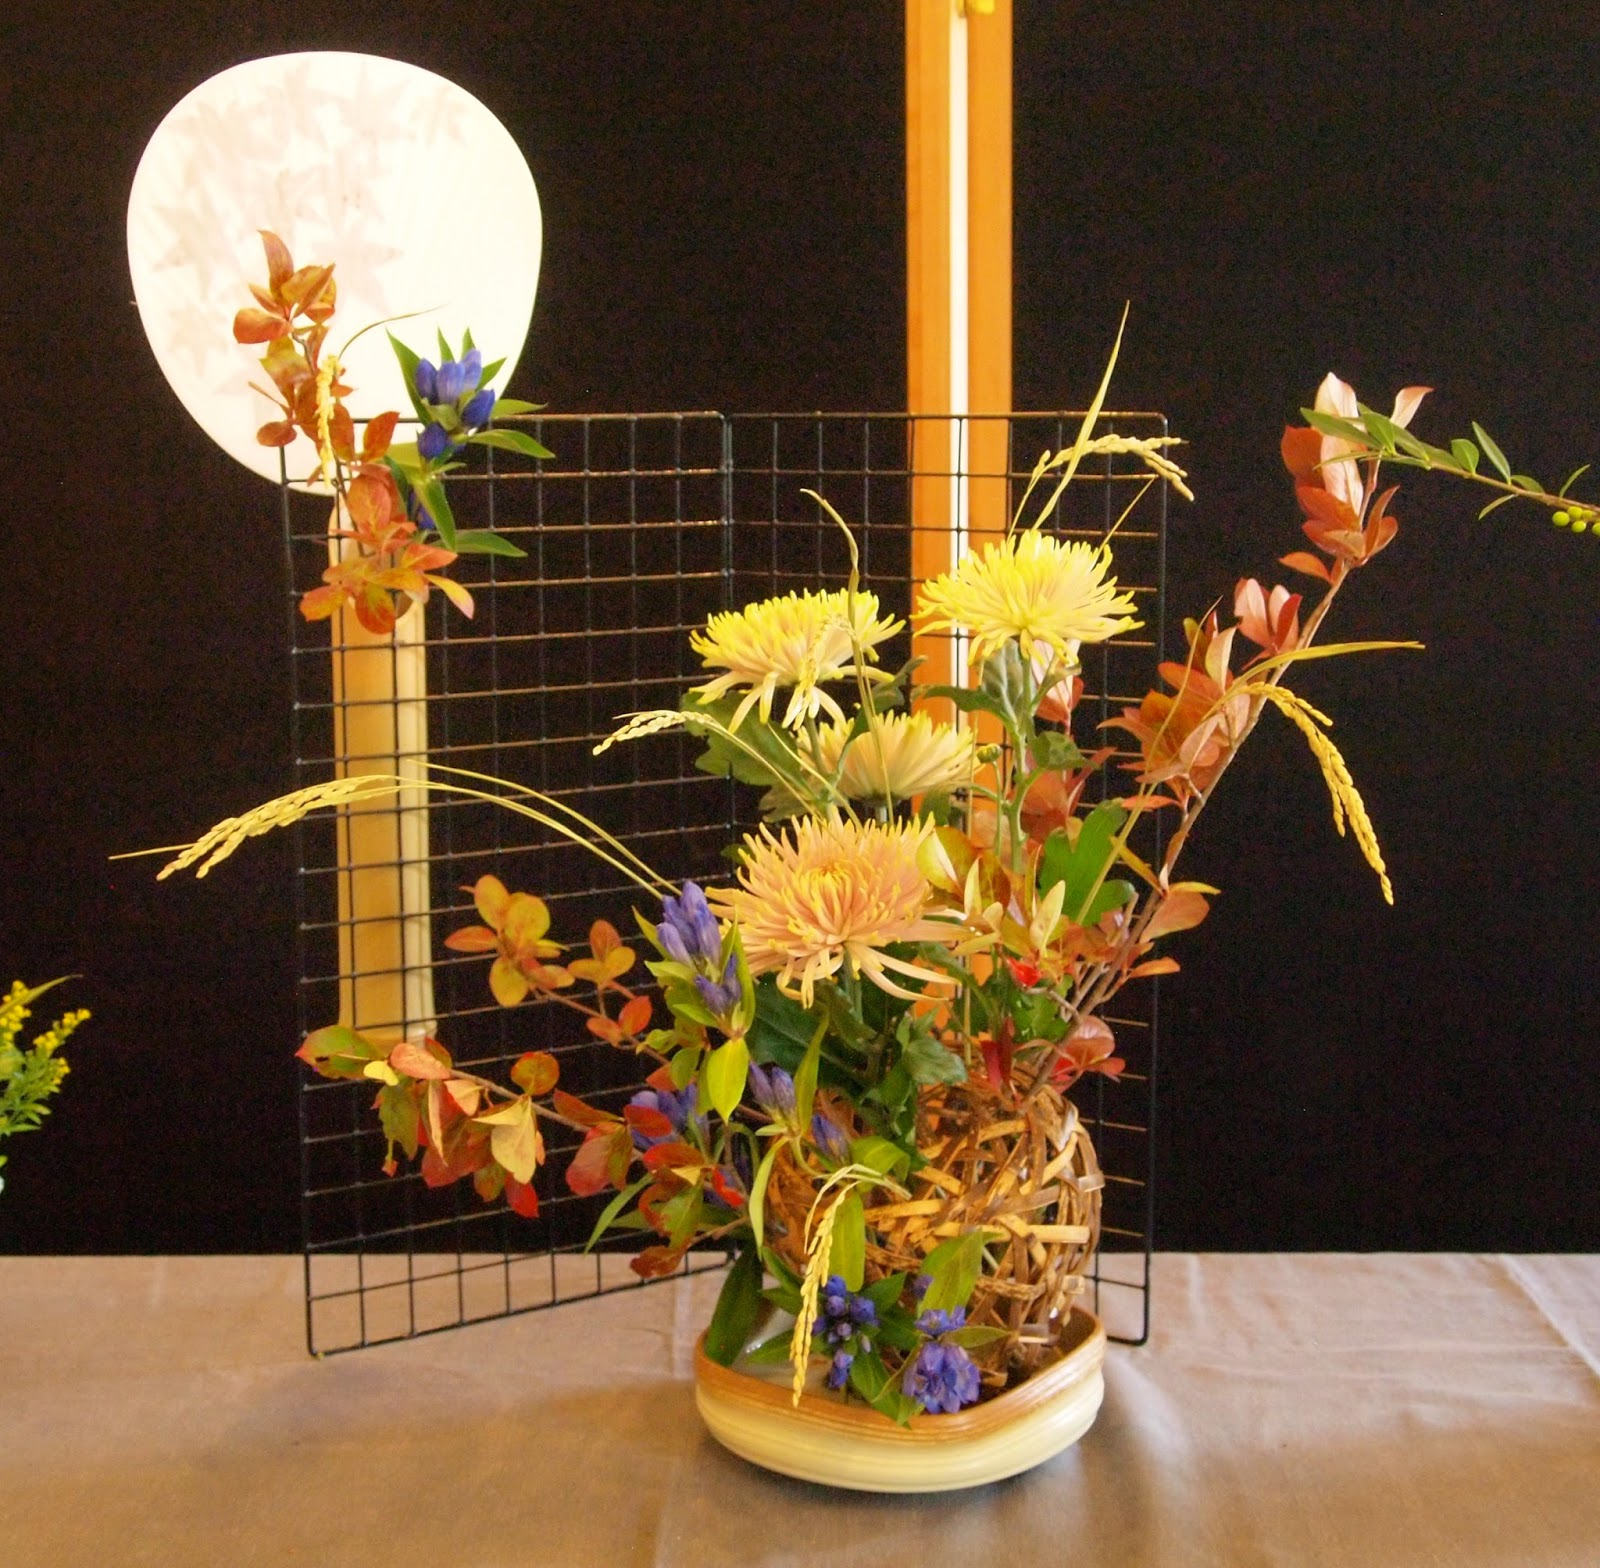 The nordic lotus ikebana blog september 2014 the next arrangement was about making something modern with a very traditional old container in this case a large bamboo vase made for formal traditional reviewsmspy